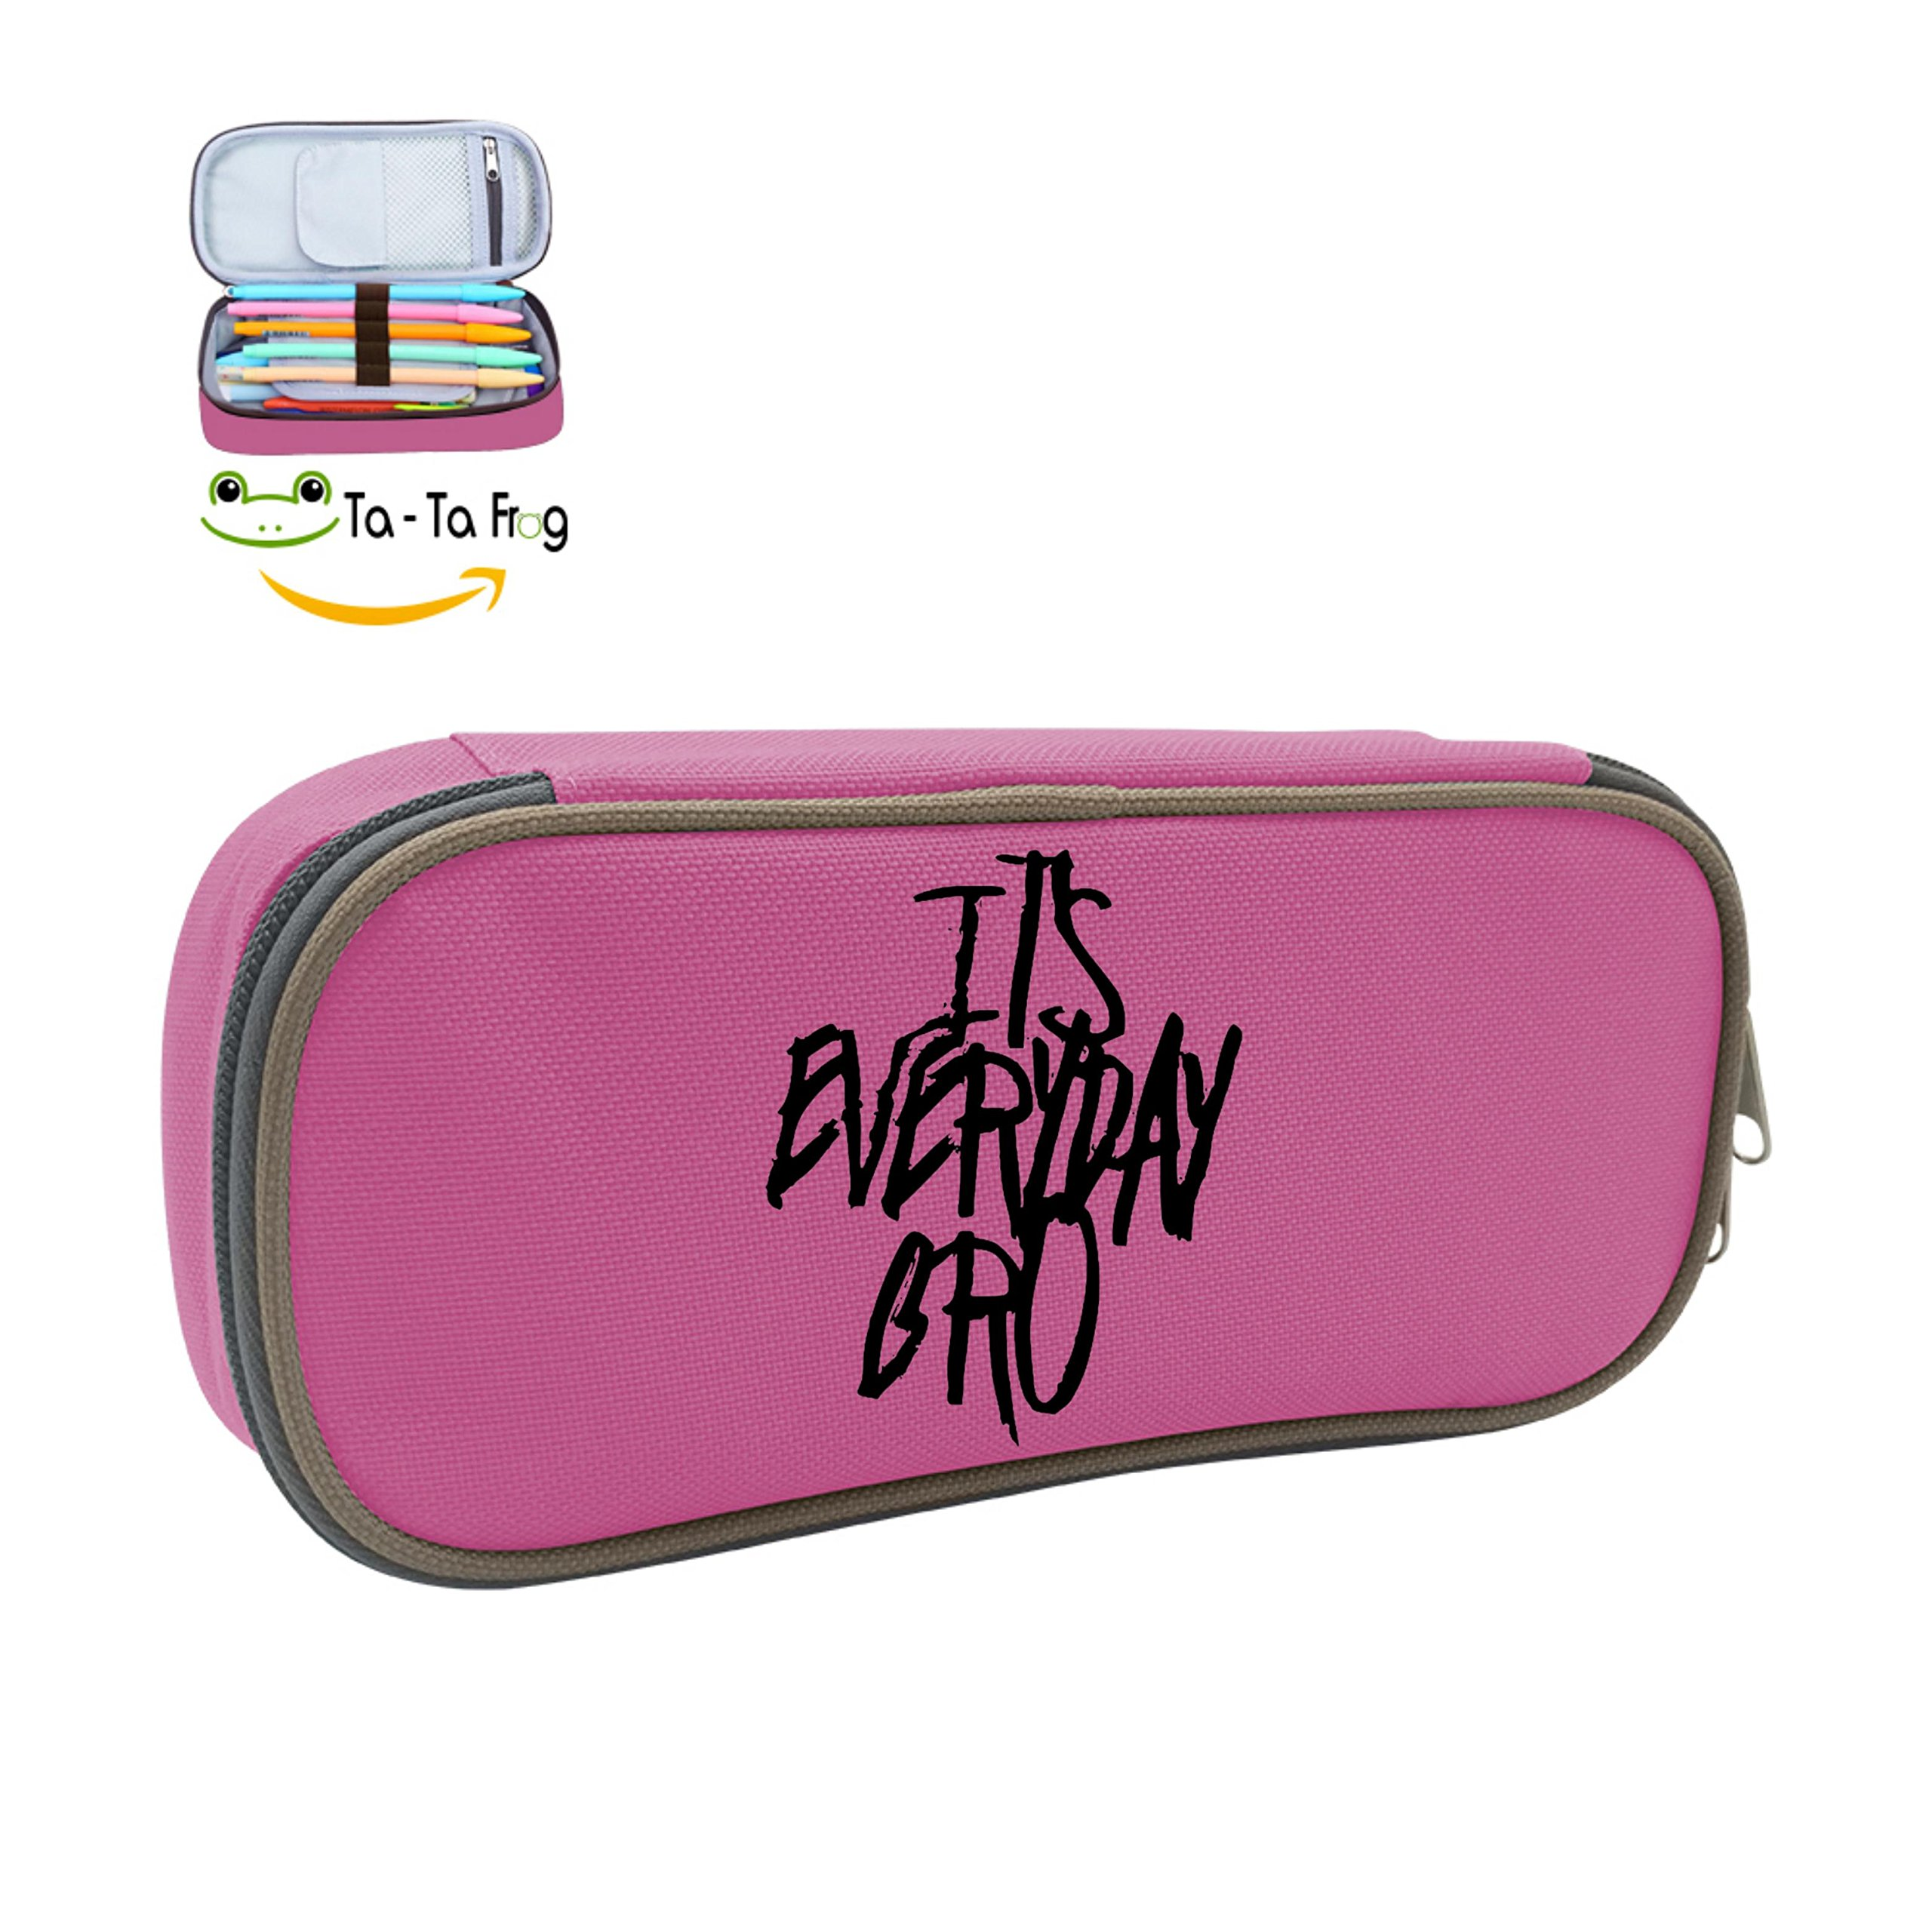 MOPE It's Everyday Bro Pencil Case Double Zipper Large Storage Space Mulit-function Stationary Portable Makeup Bag by Linner